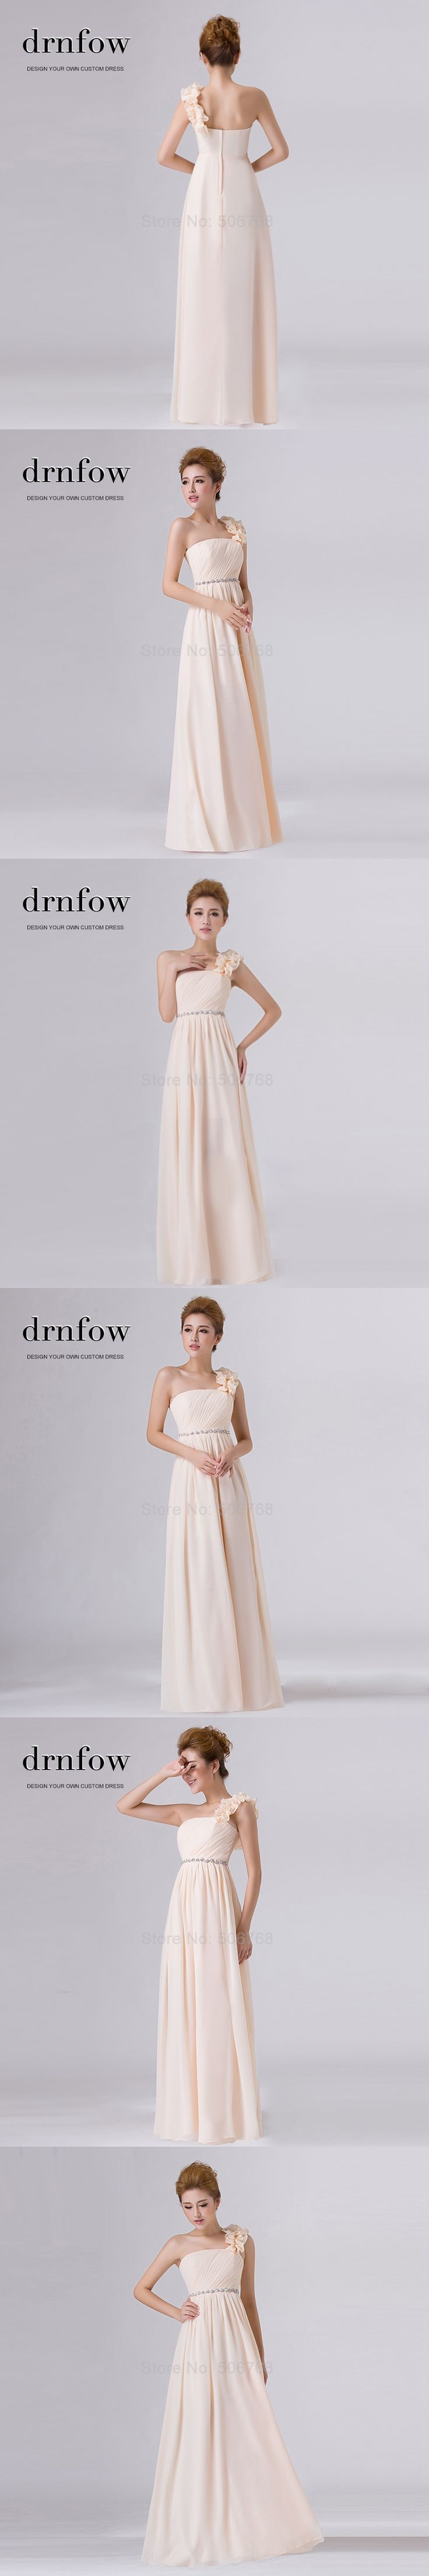 The 25 best ankle length bridesmaids dresses ideas on pinterest 2017 one shoulder chiffon long bridesmaid dresses scalloped women ankle length bridal party prom dress ombrellifo Gallery